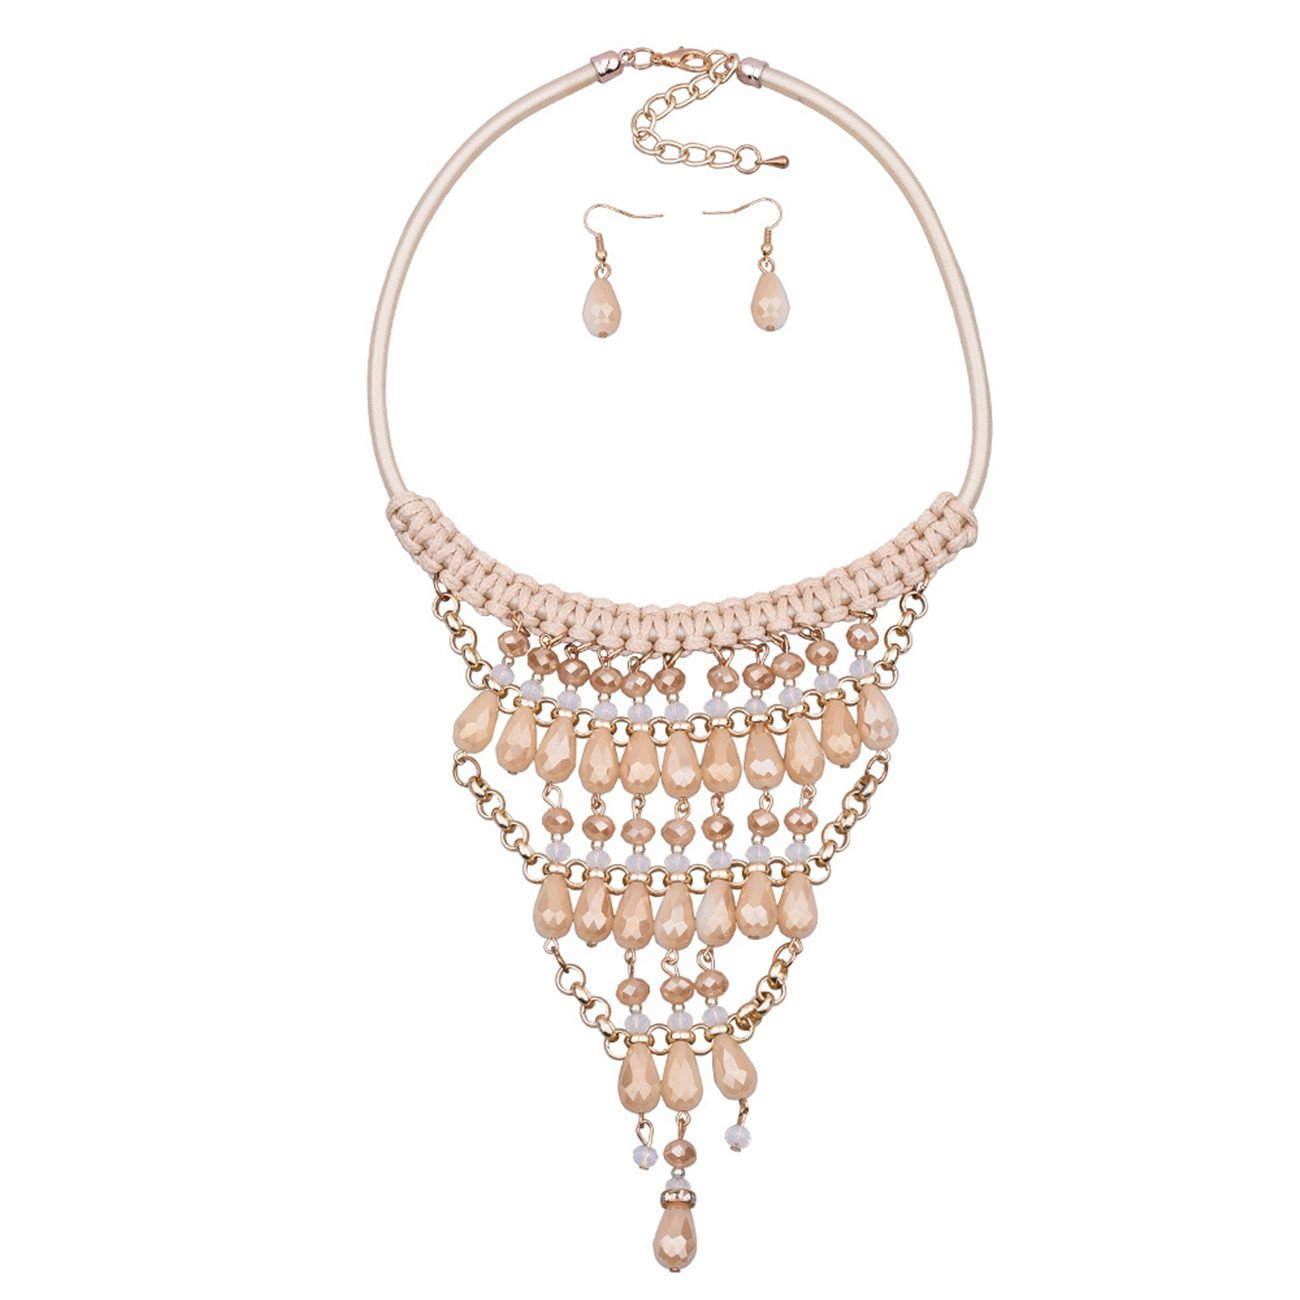 LOHOME Womens Fashion Necklaces Multi-level Beads Charm Necklace Earrings Set Collar Bib for Women